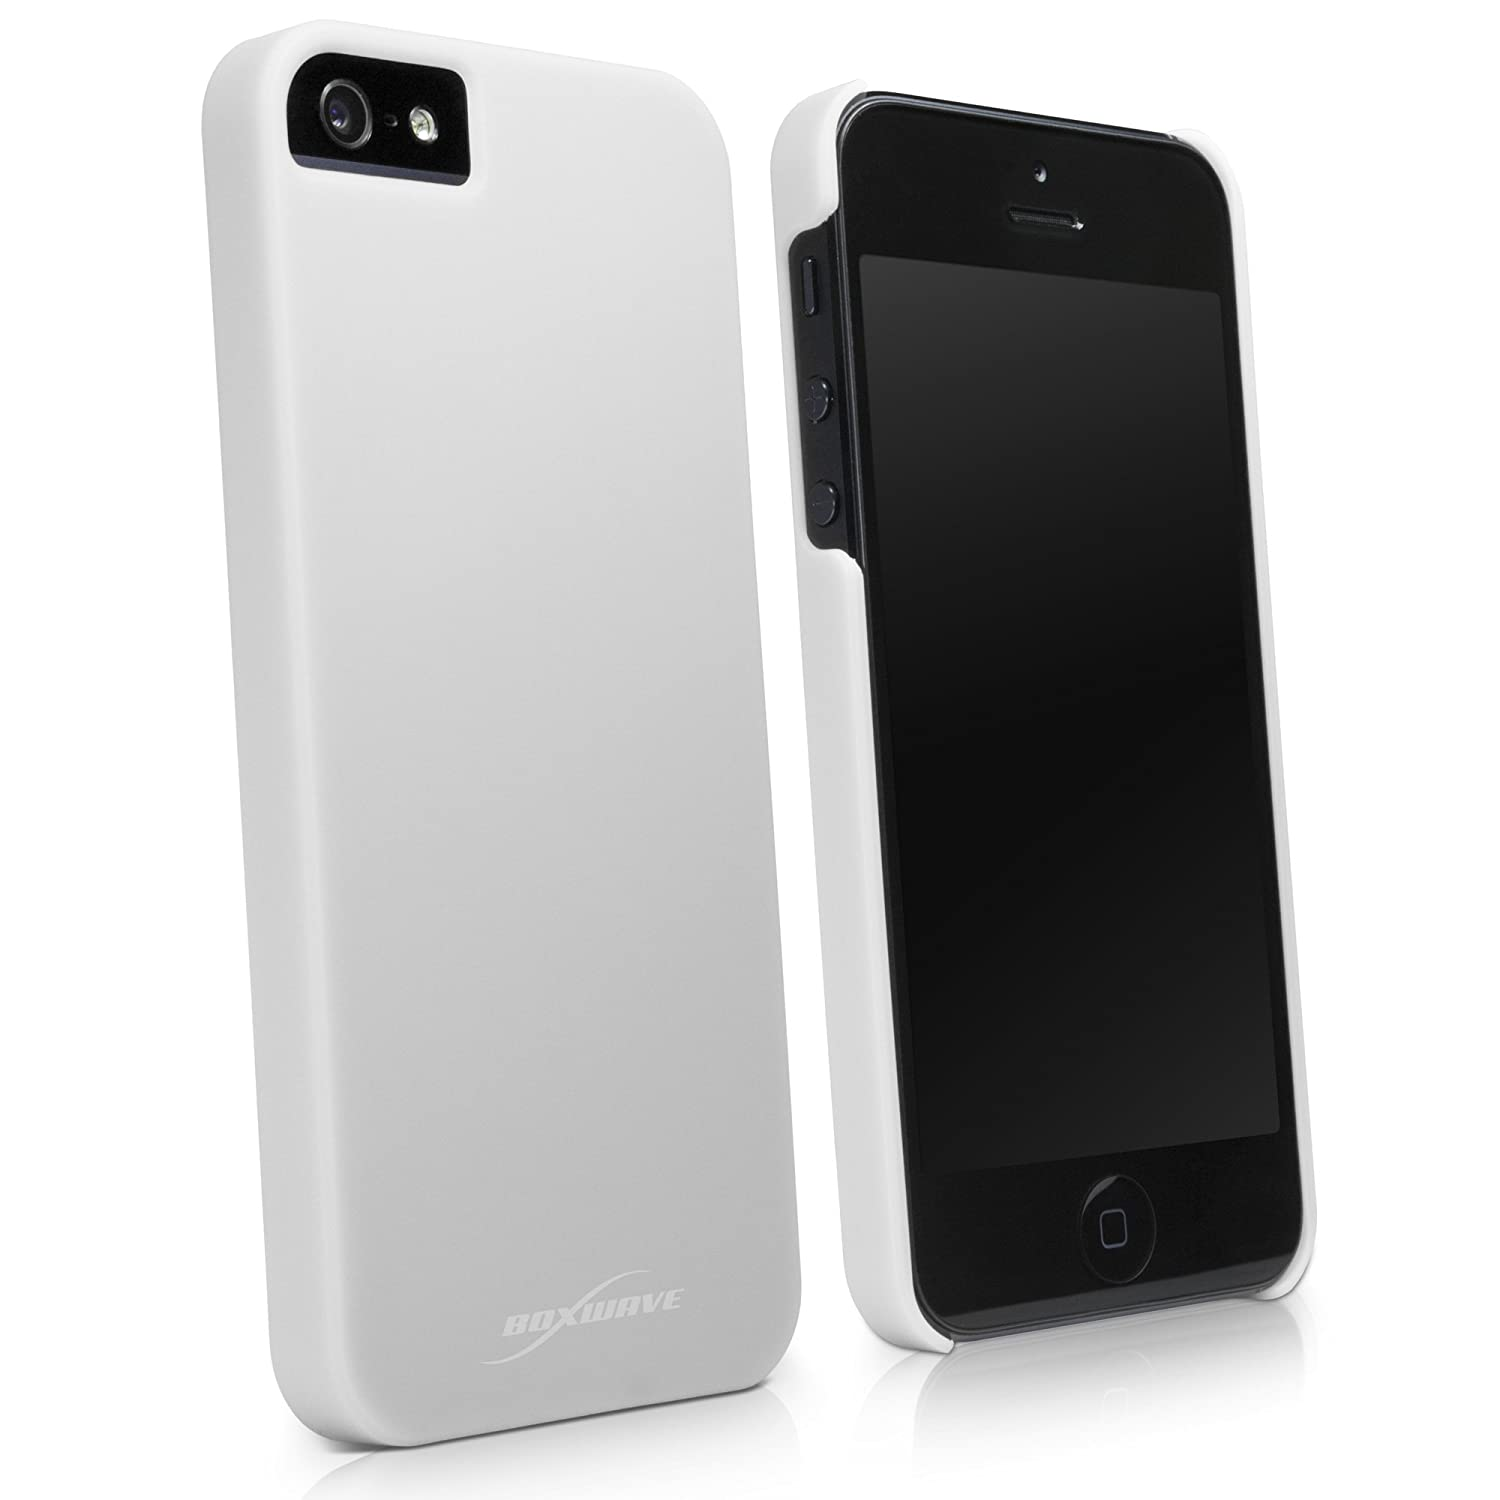 iPhone 5 Case, BoxWave [Minimus Case] Slim Fit, Protective PolyCarbonate Cover for Apple iPhone 5, SE, 5s - Winter White